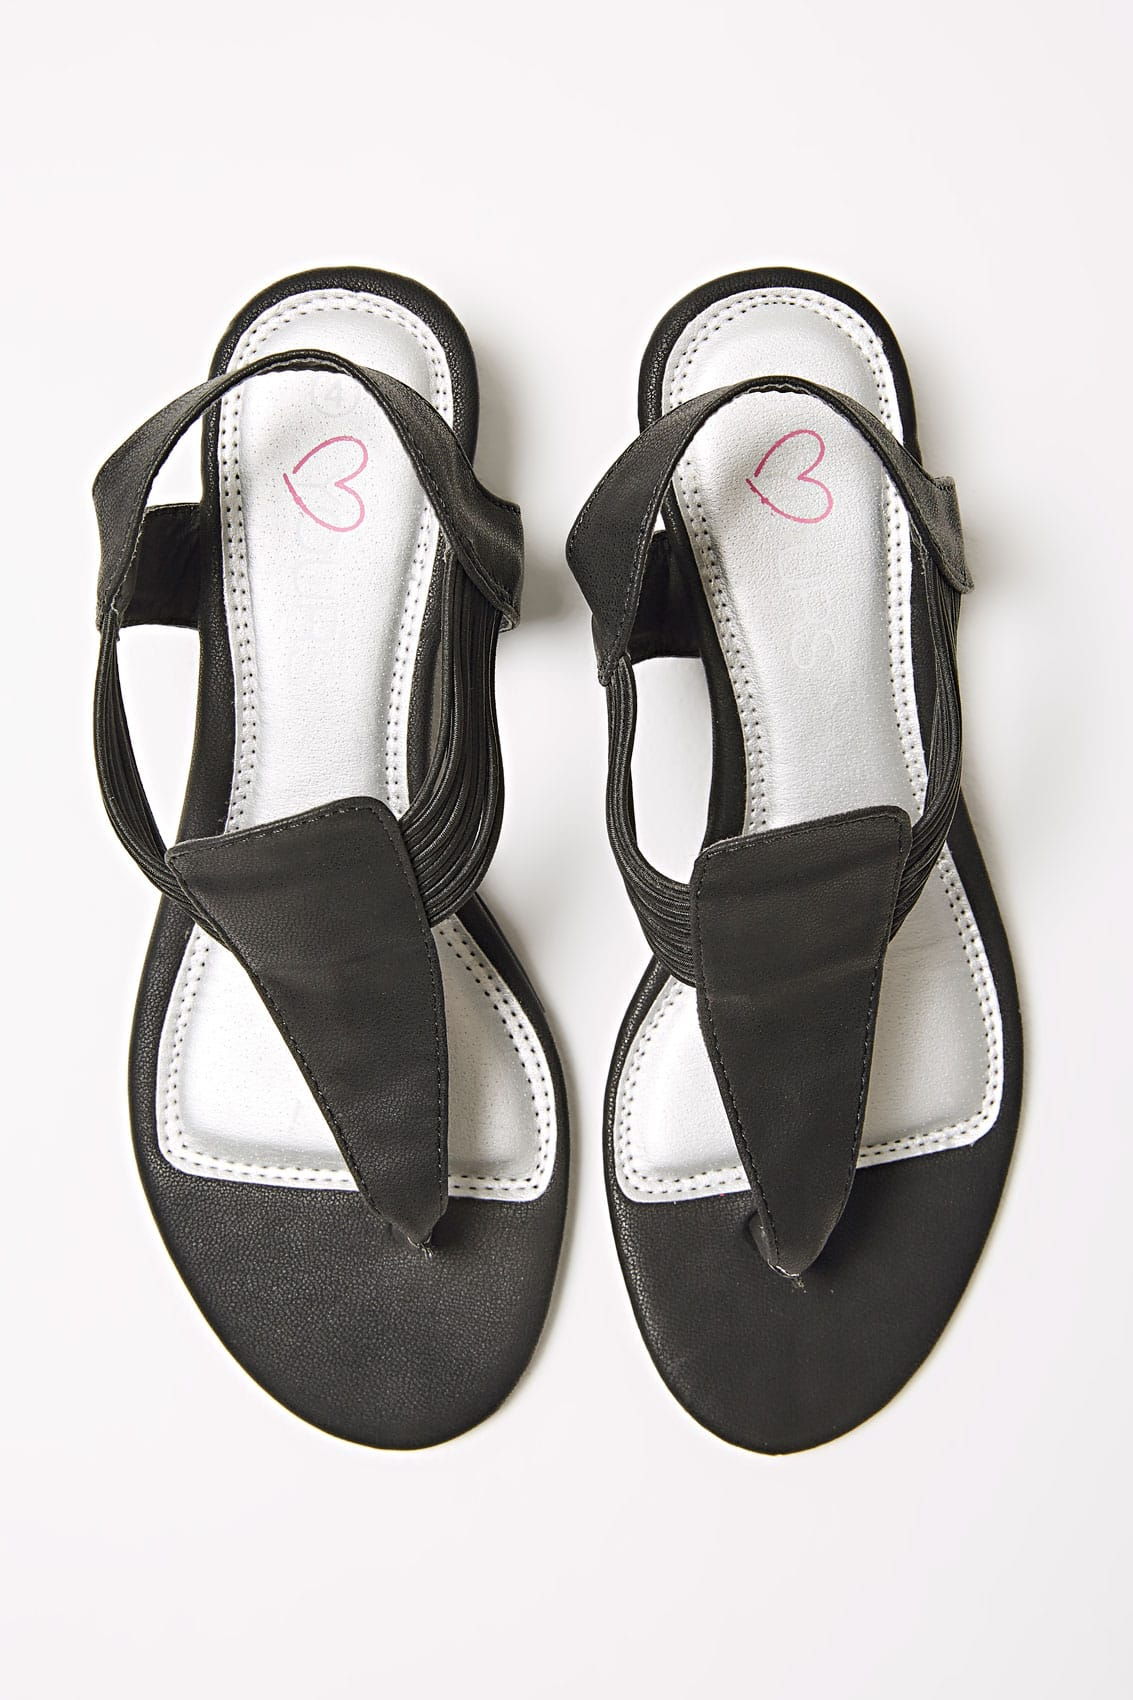 Black Toe Post Wedge Sandal In Eee Fit